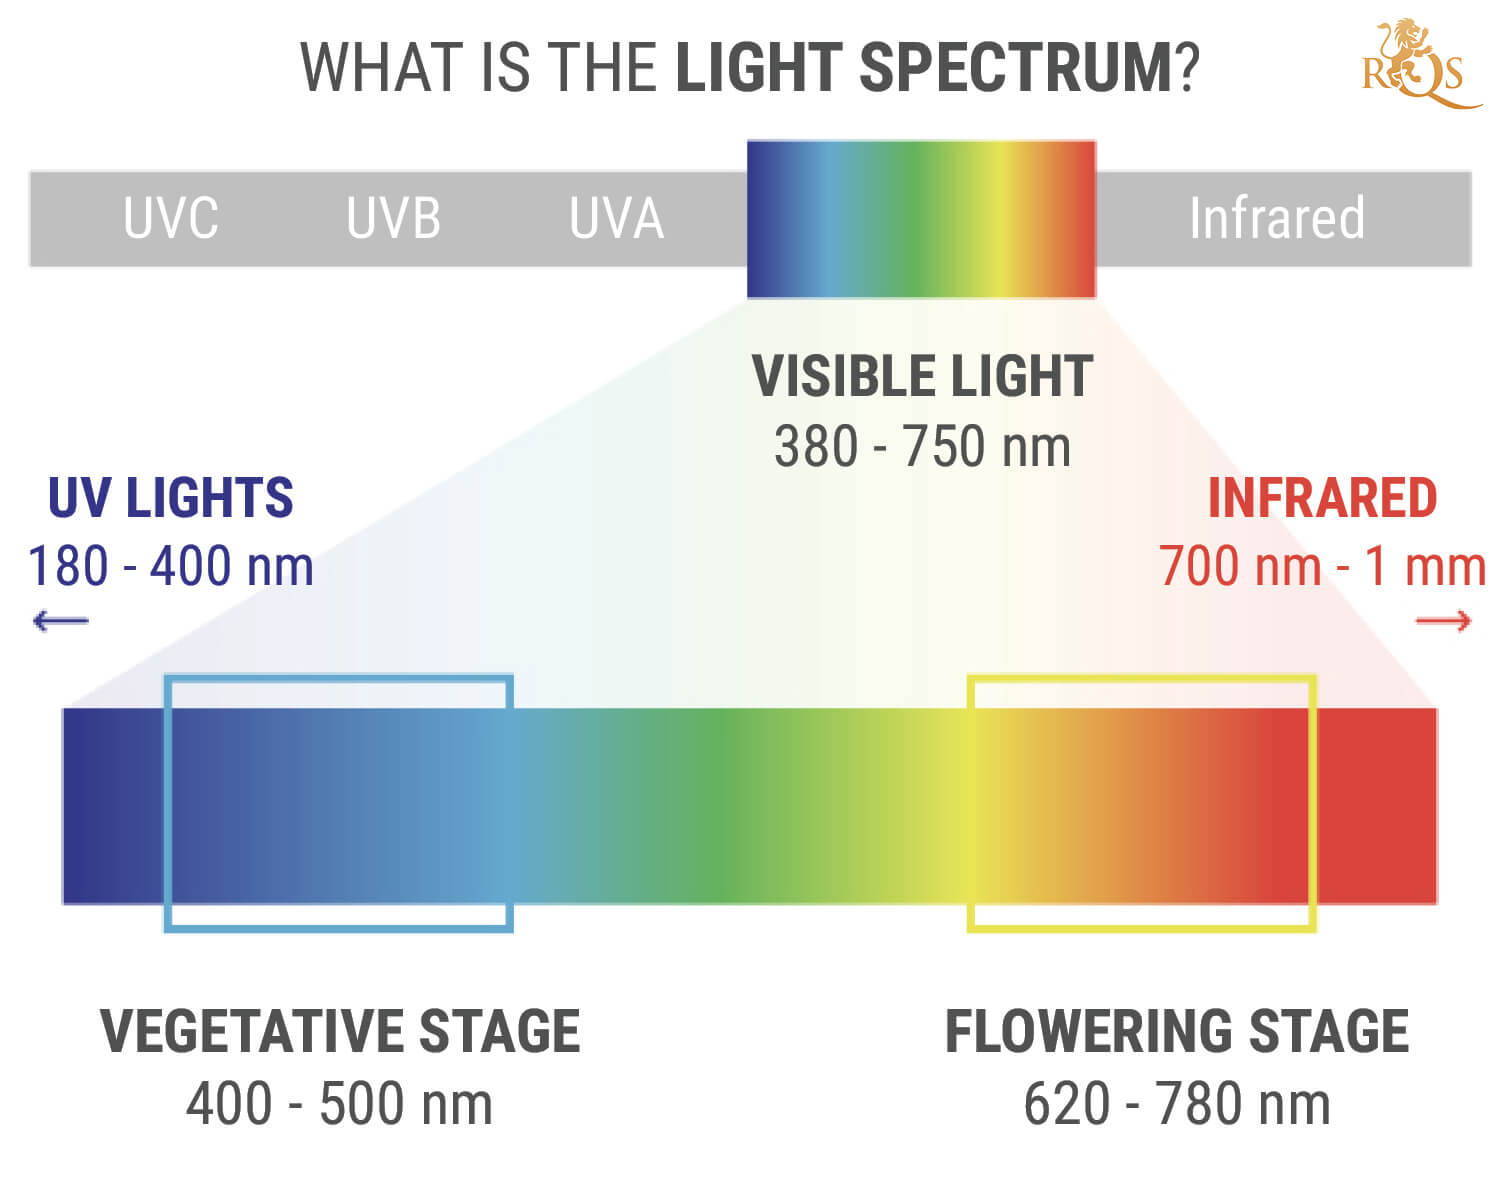 What Is The Light Spectrum?